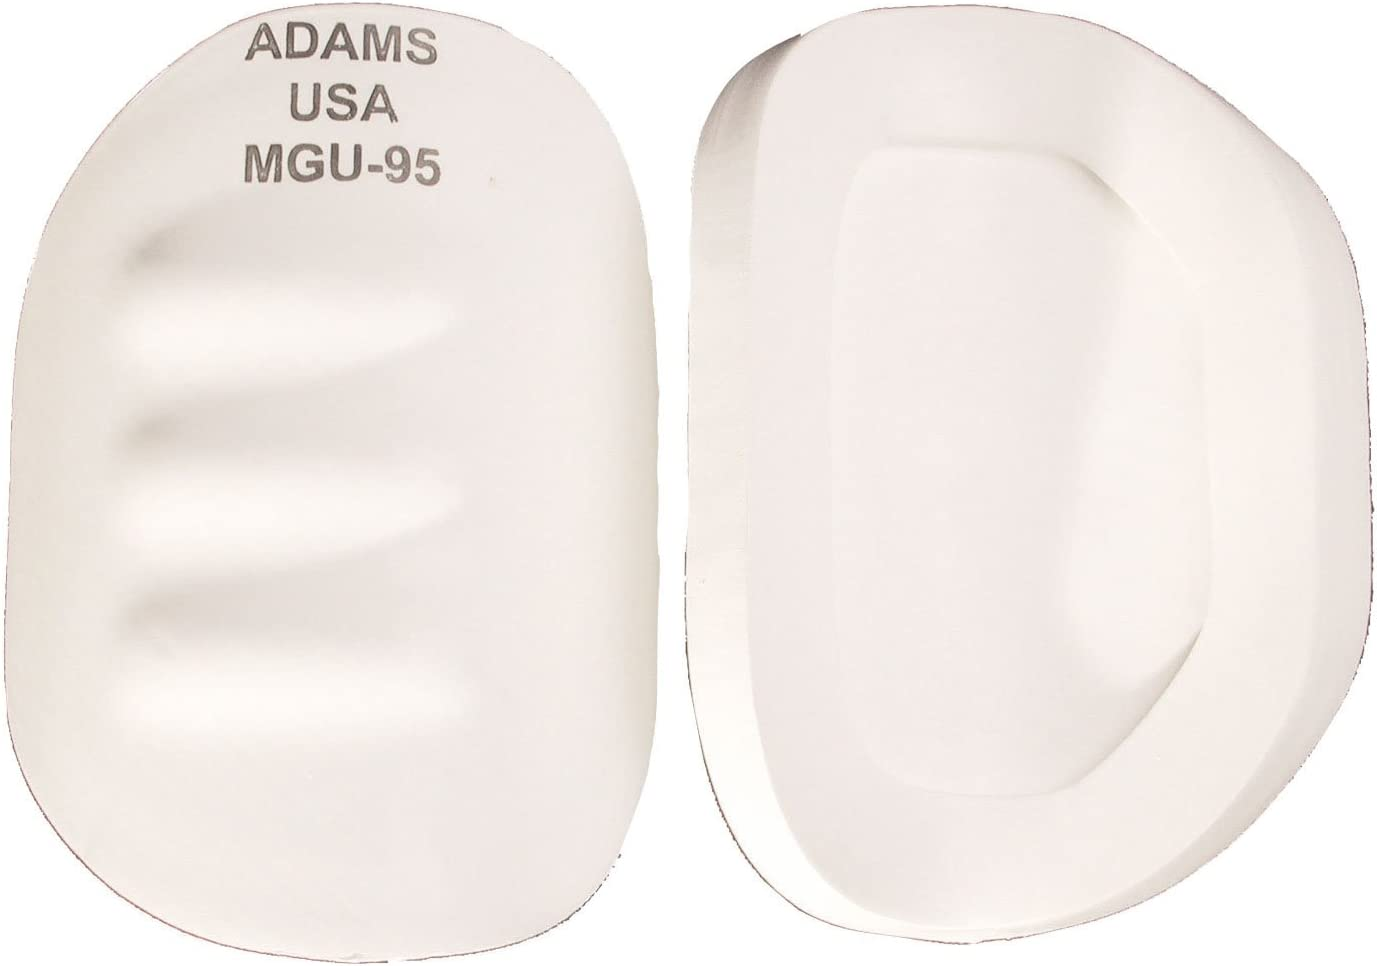 Adams USA Adult Universal Thigh Pad withバンパー